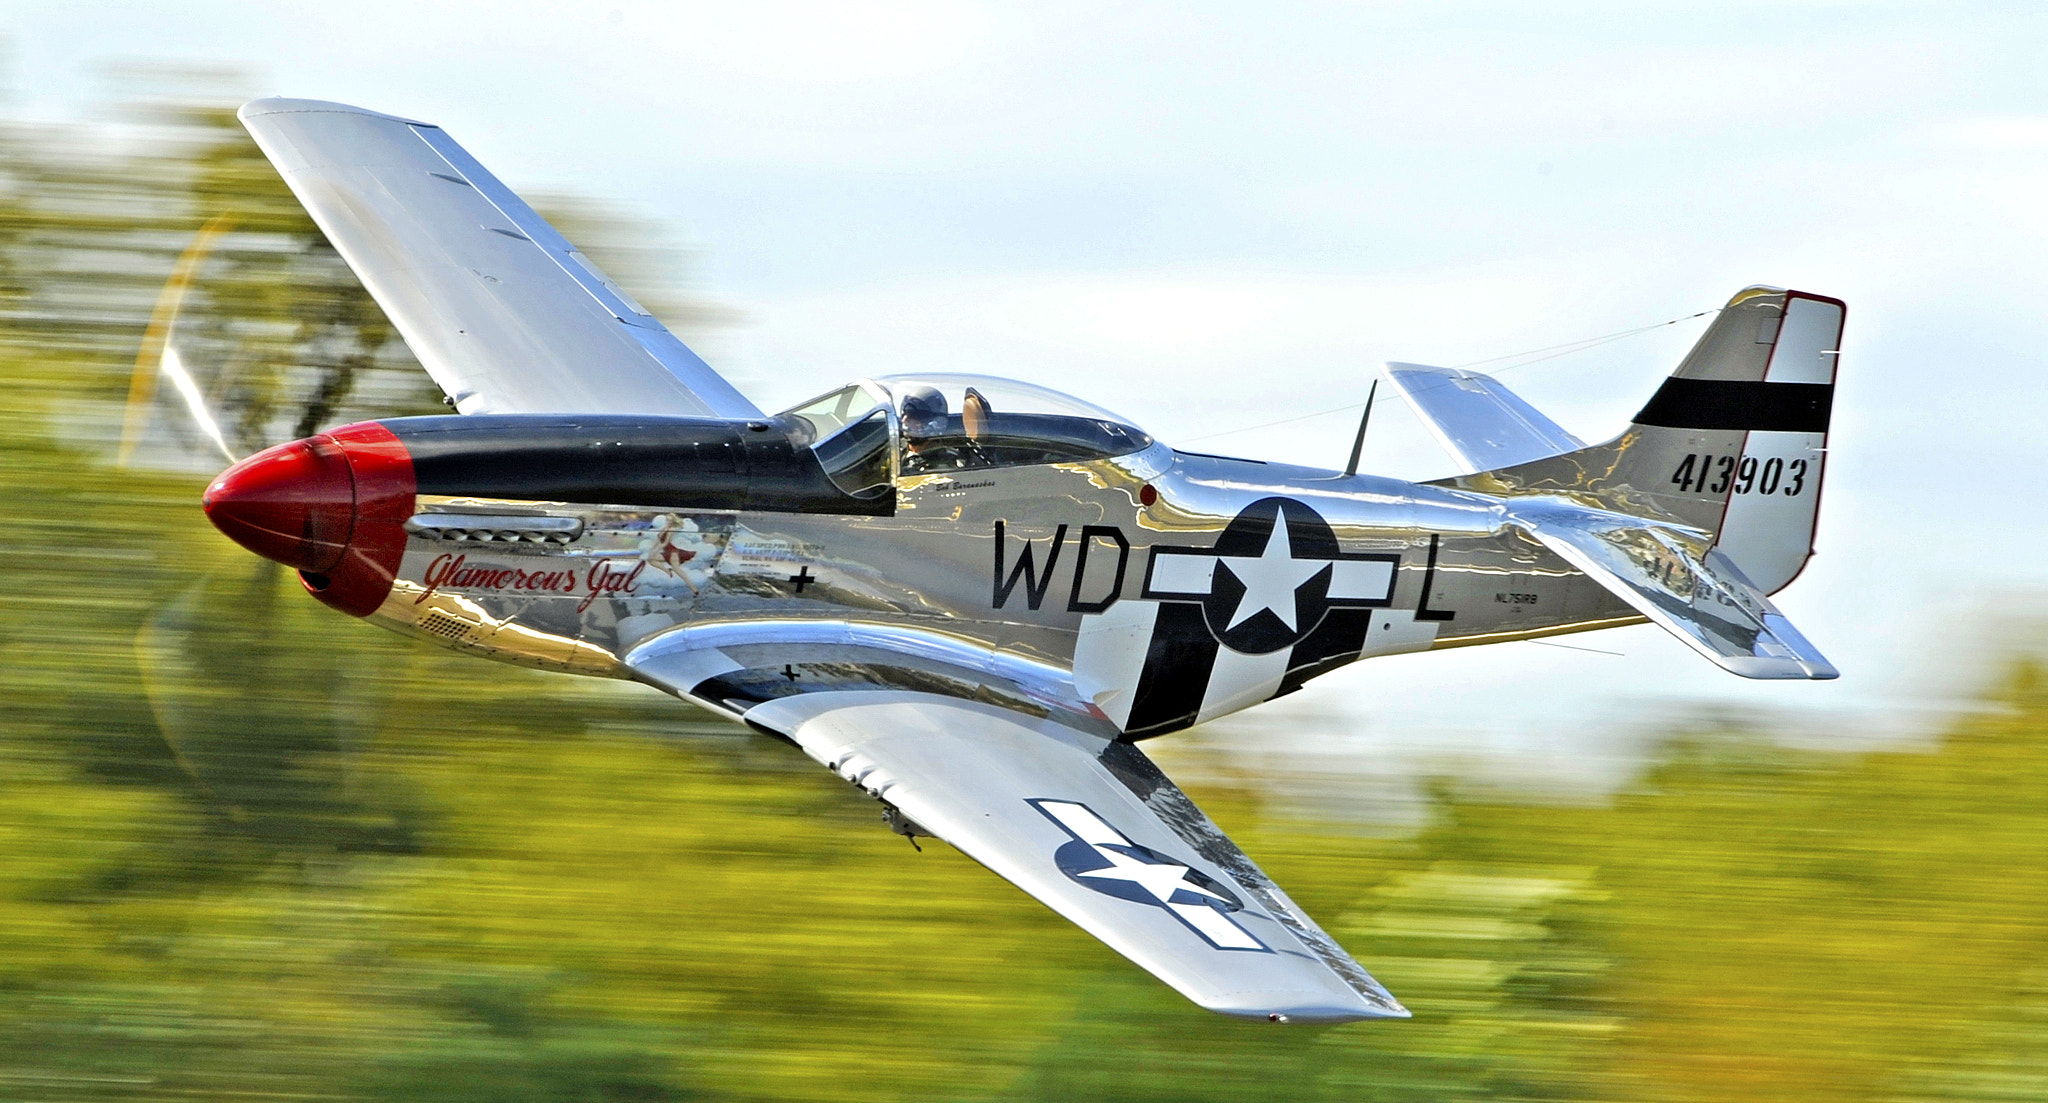 Photograph QuickLowPass by Rod Reilly on 500px